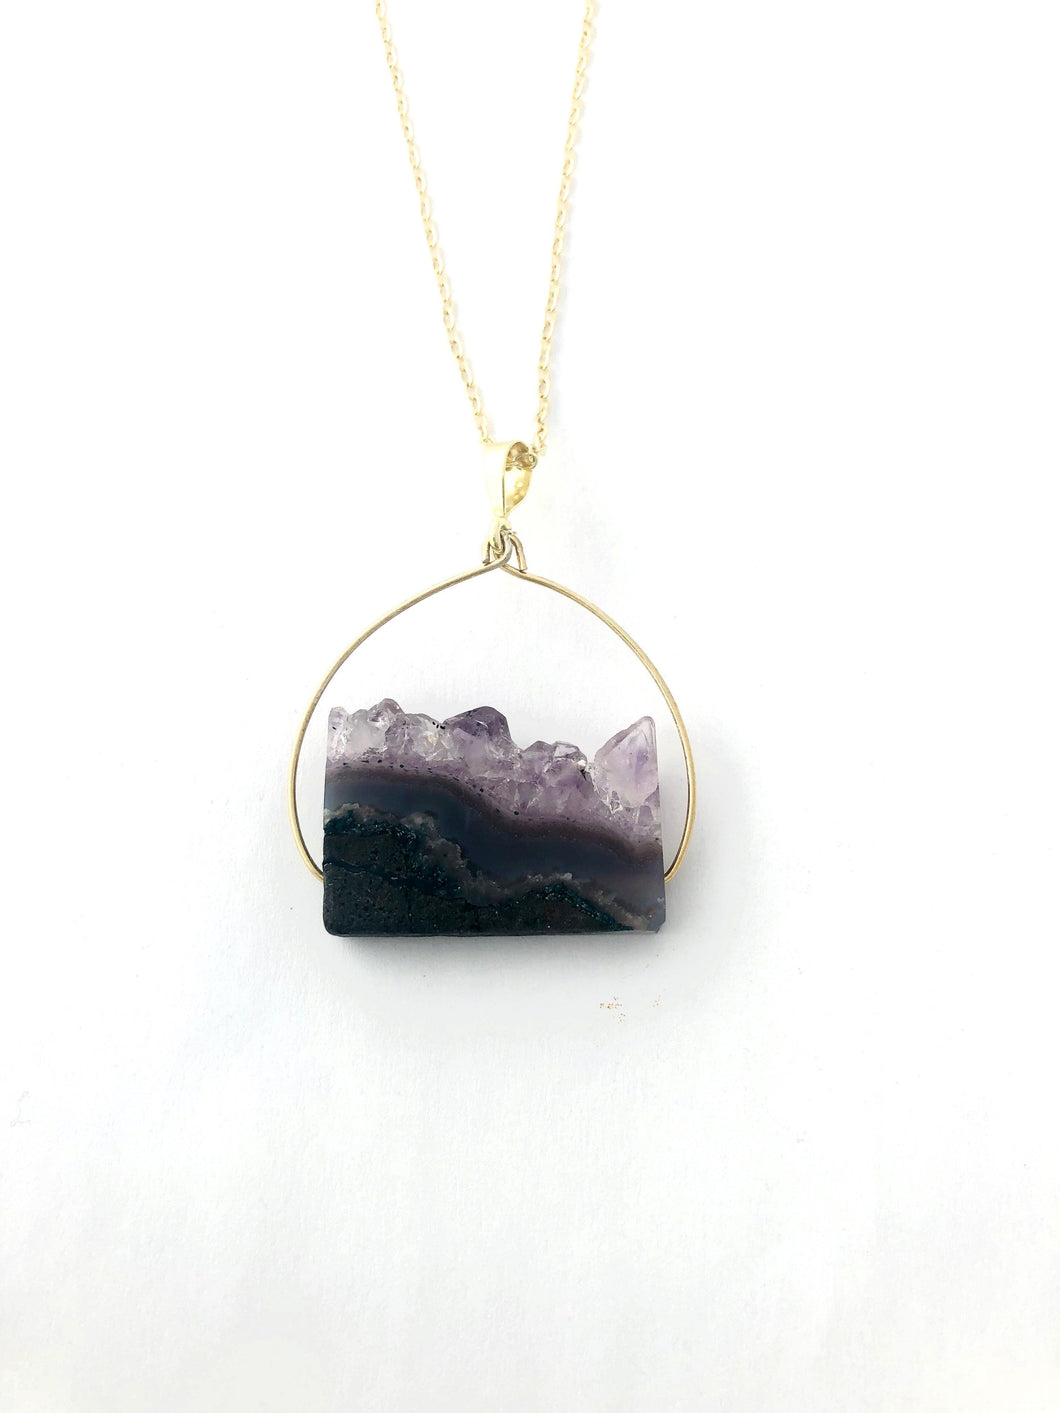 Amethyst Pendant Necklace - Full Moon Designs